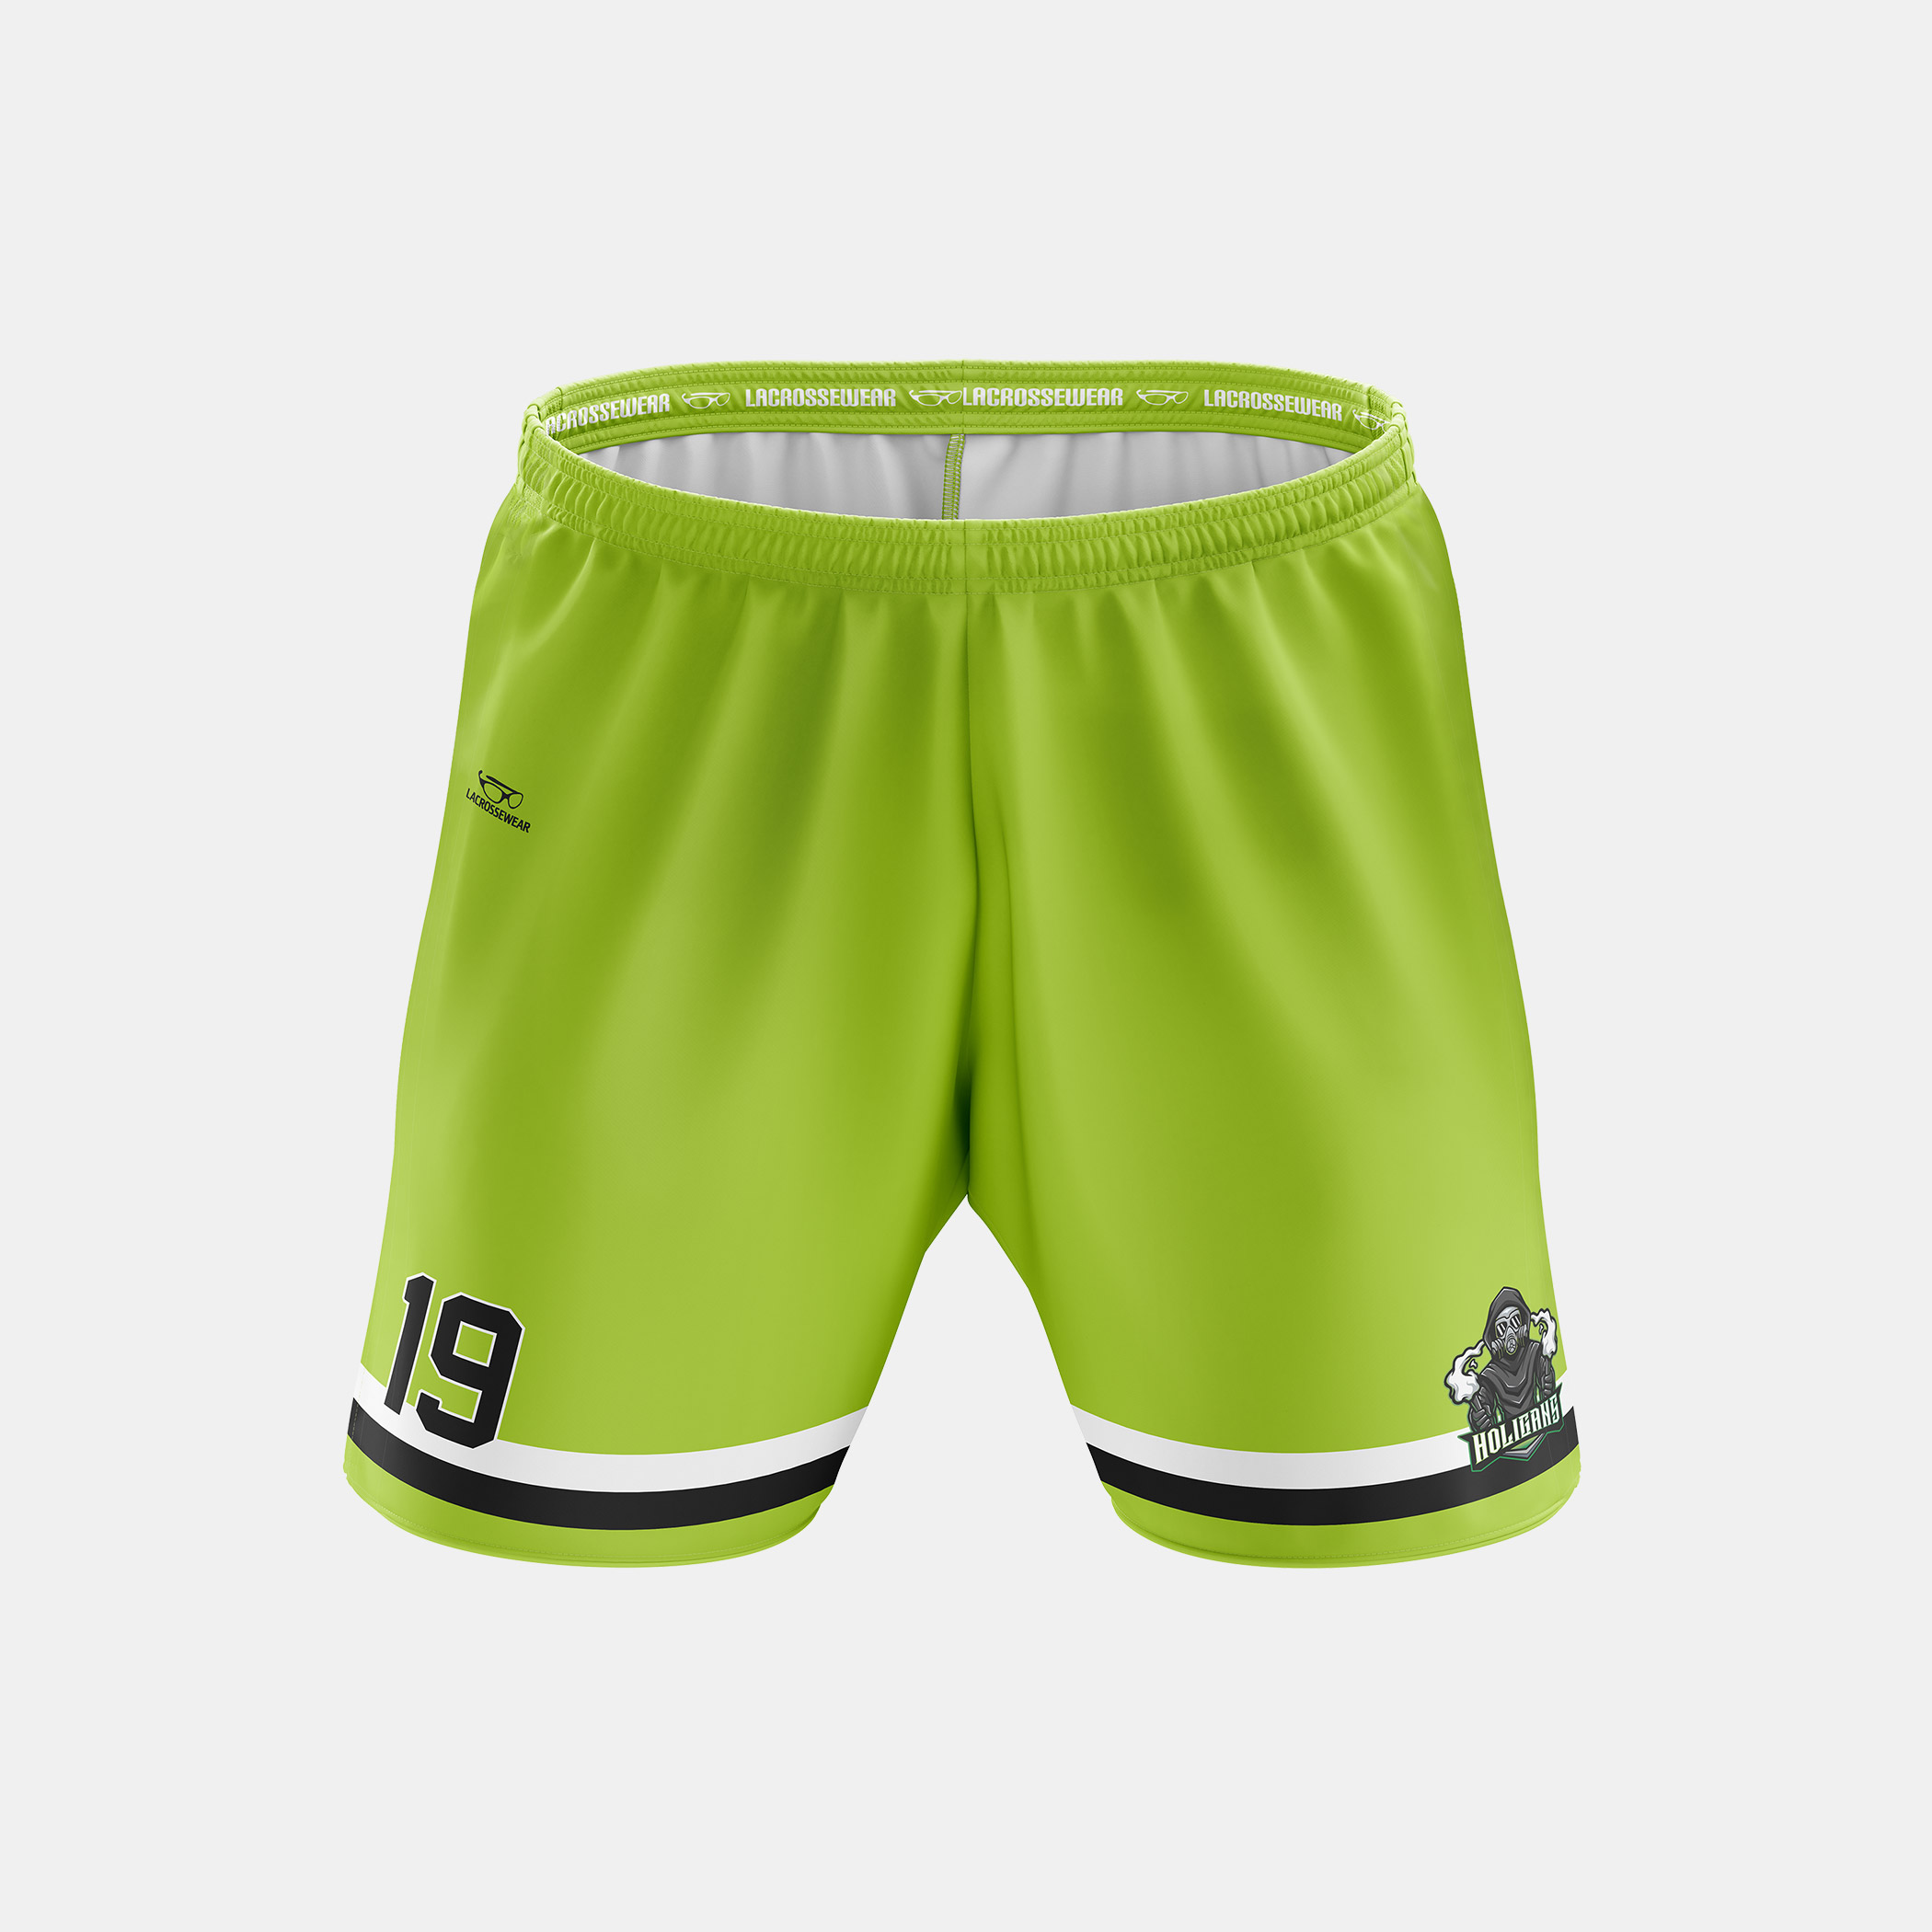 Holigans Shorts Front View